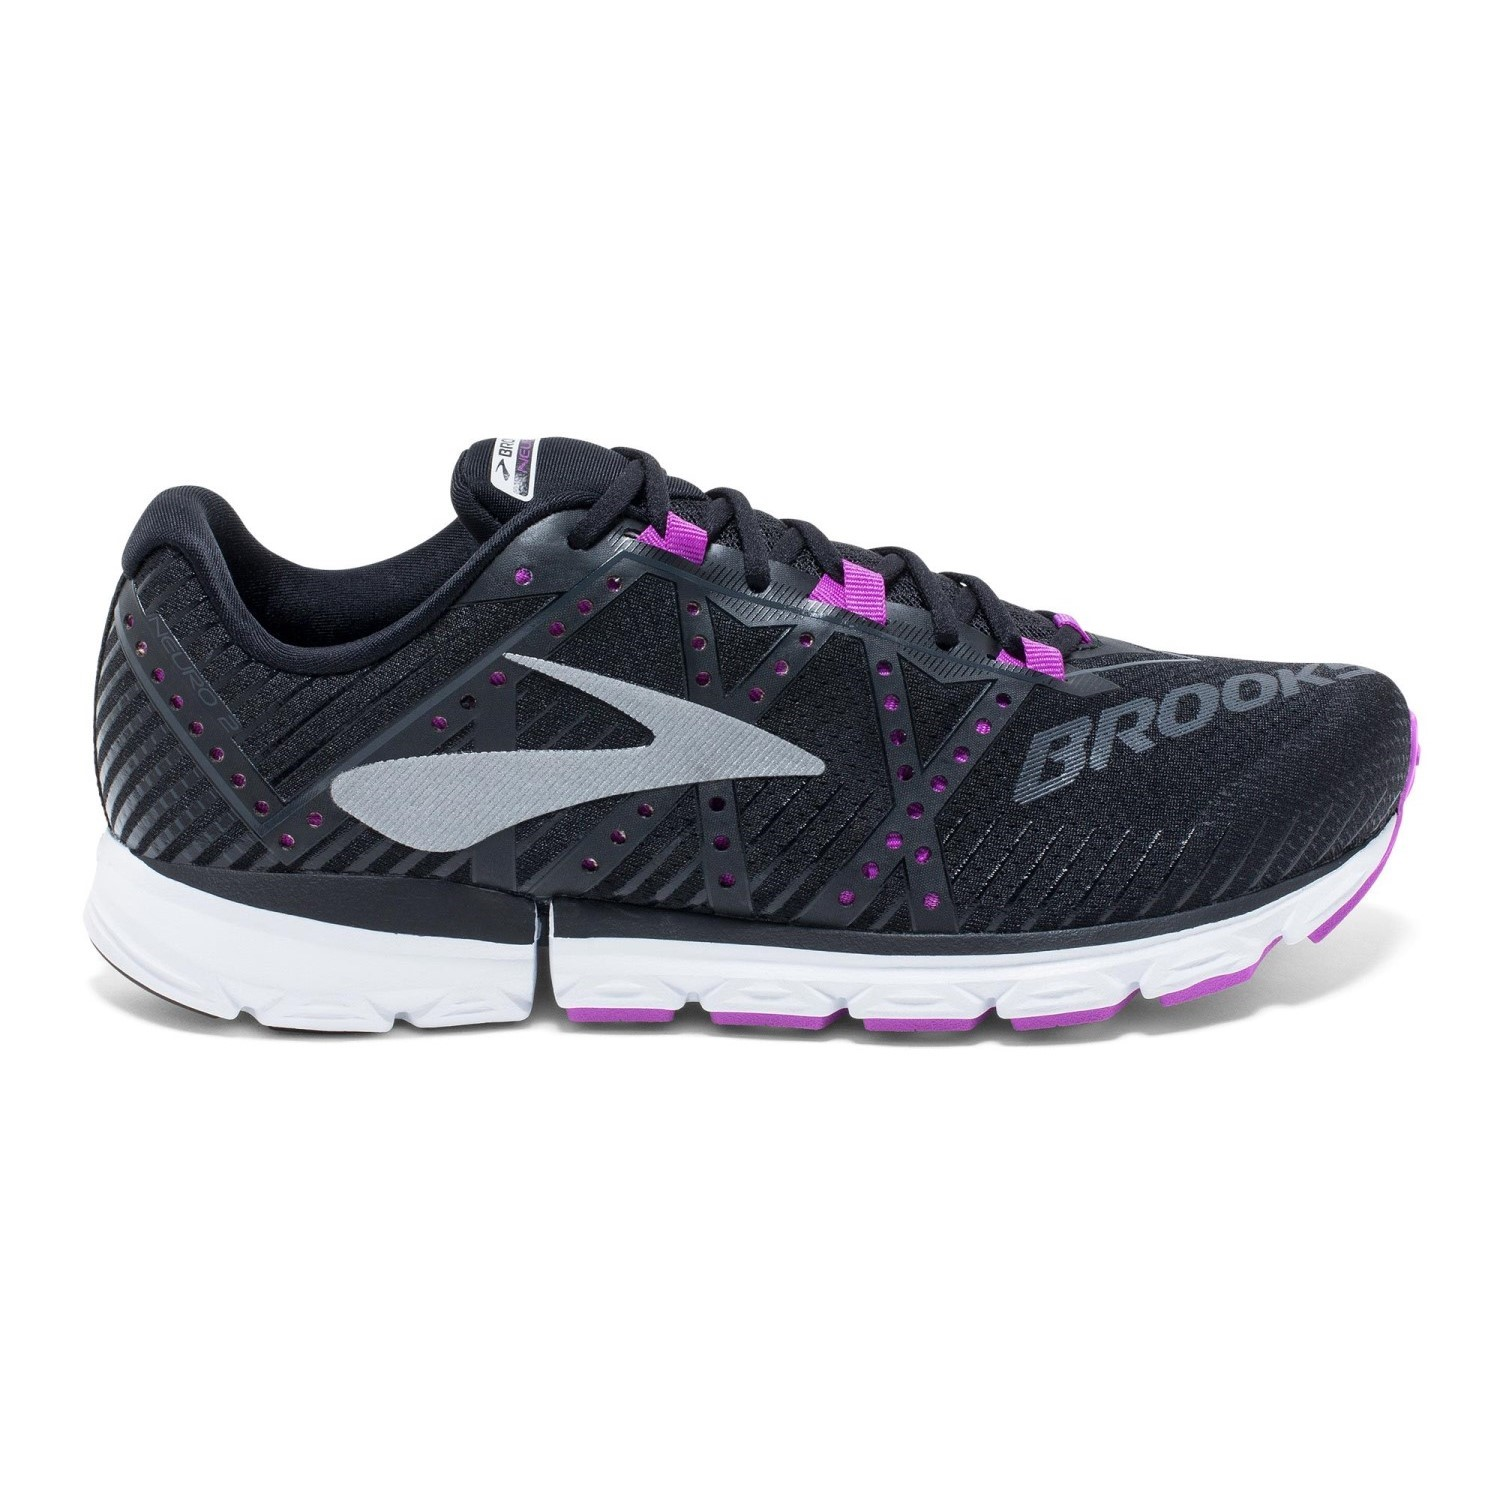 5ca7b1a2c7e Brooks Neuro 2 - Womens Running Shoes - Black Purple White